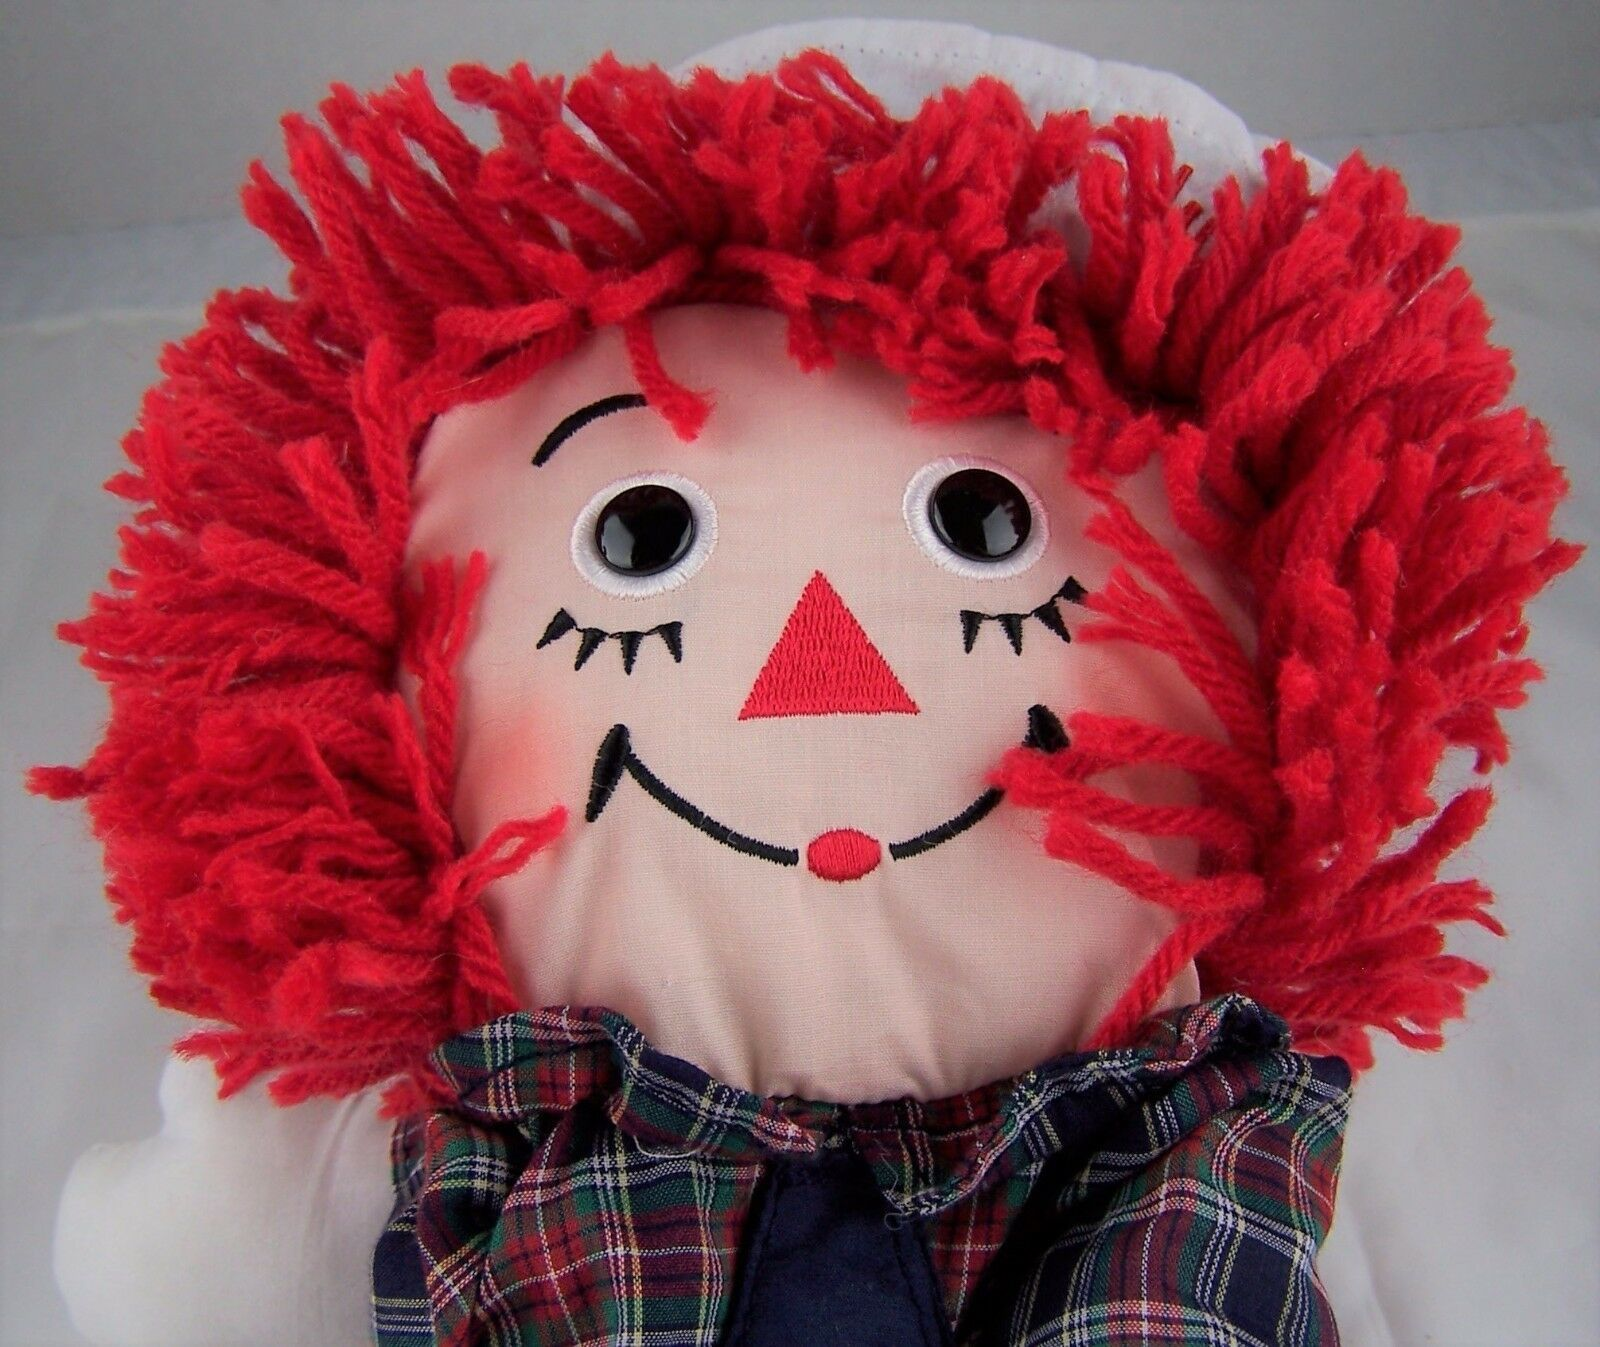 Raggedy Andy Hand Puppet Applause Hasbro 16896 Doll NWT Embroidered Face Button